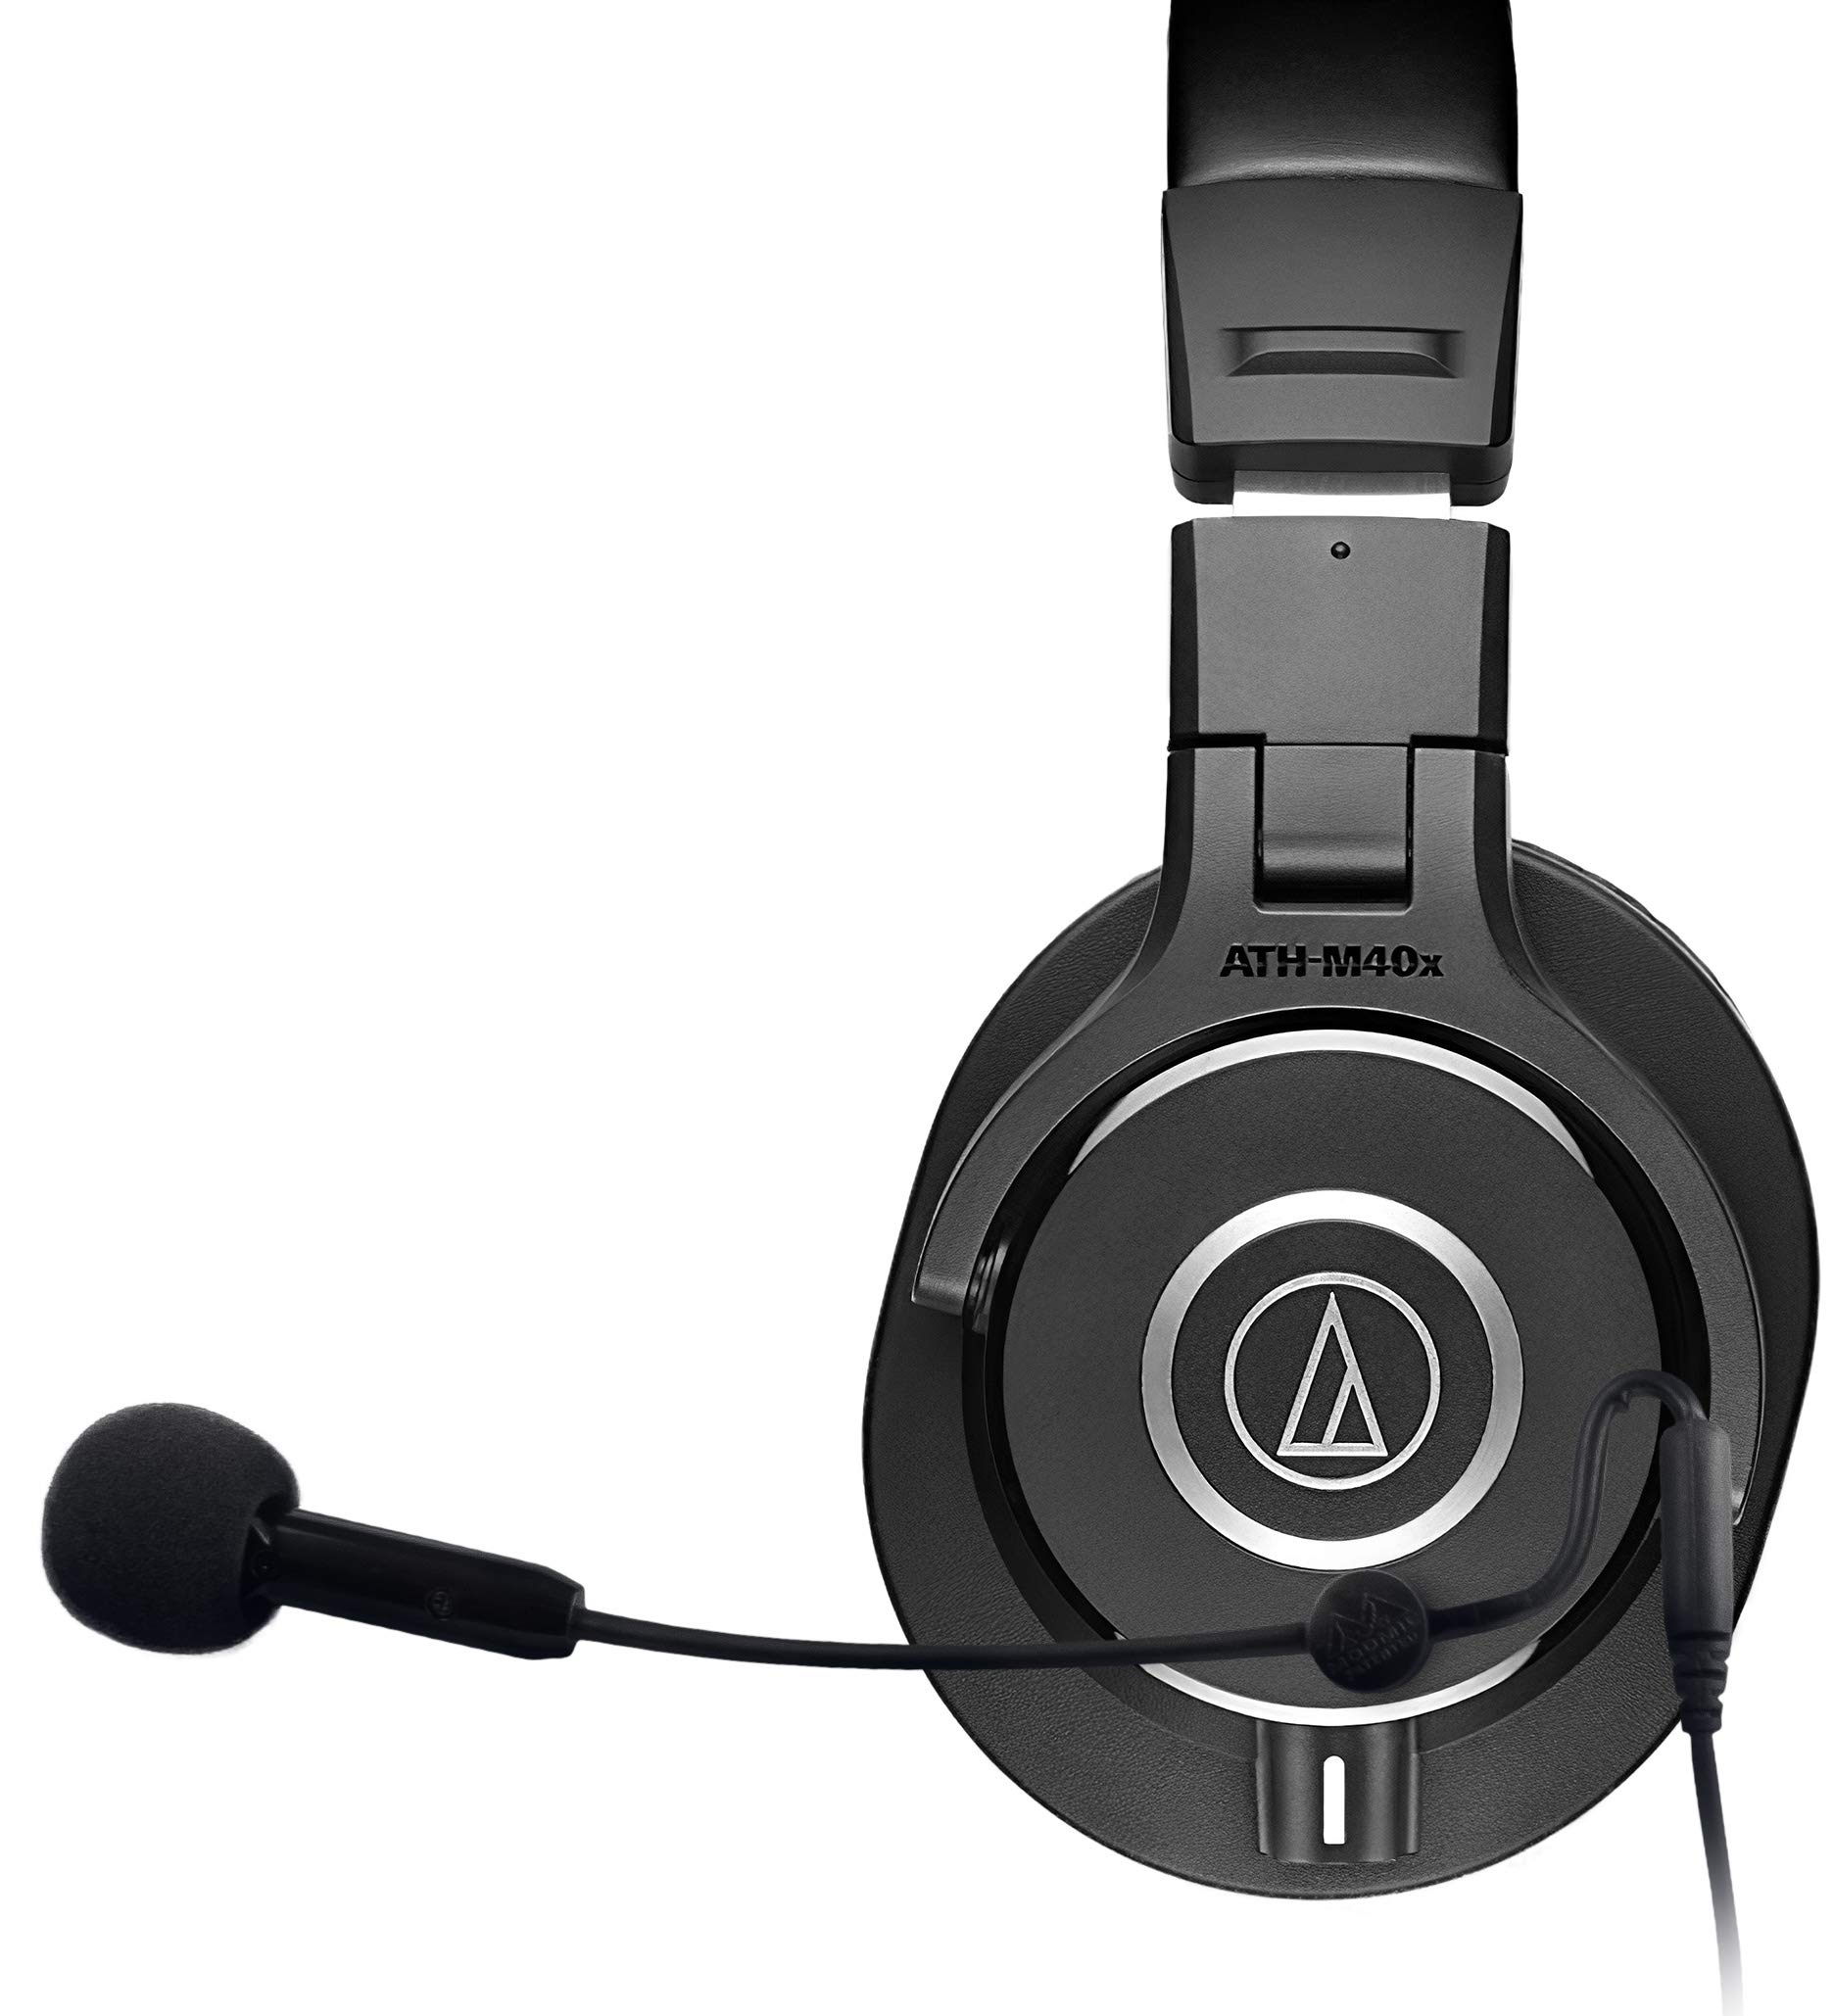 Audio-Technica ATH-M40x Professional Studio Monitor Headphones Bundle with Antlion Audio ModMic 5 Attachable Microphone and Blucoil Y Splitter for Audio, Mic